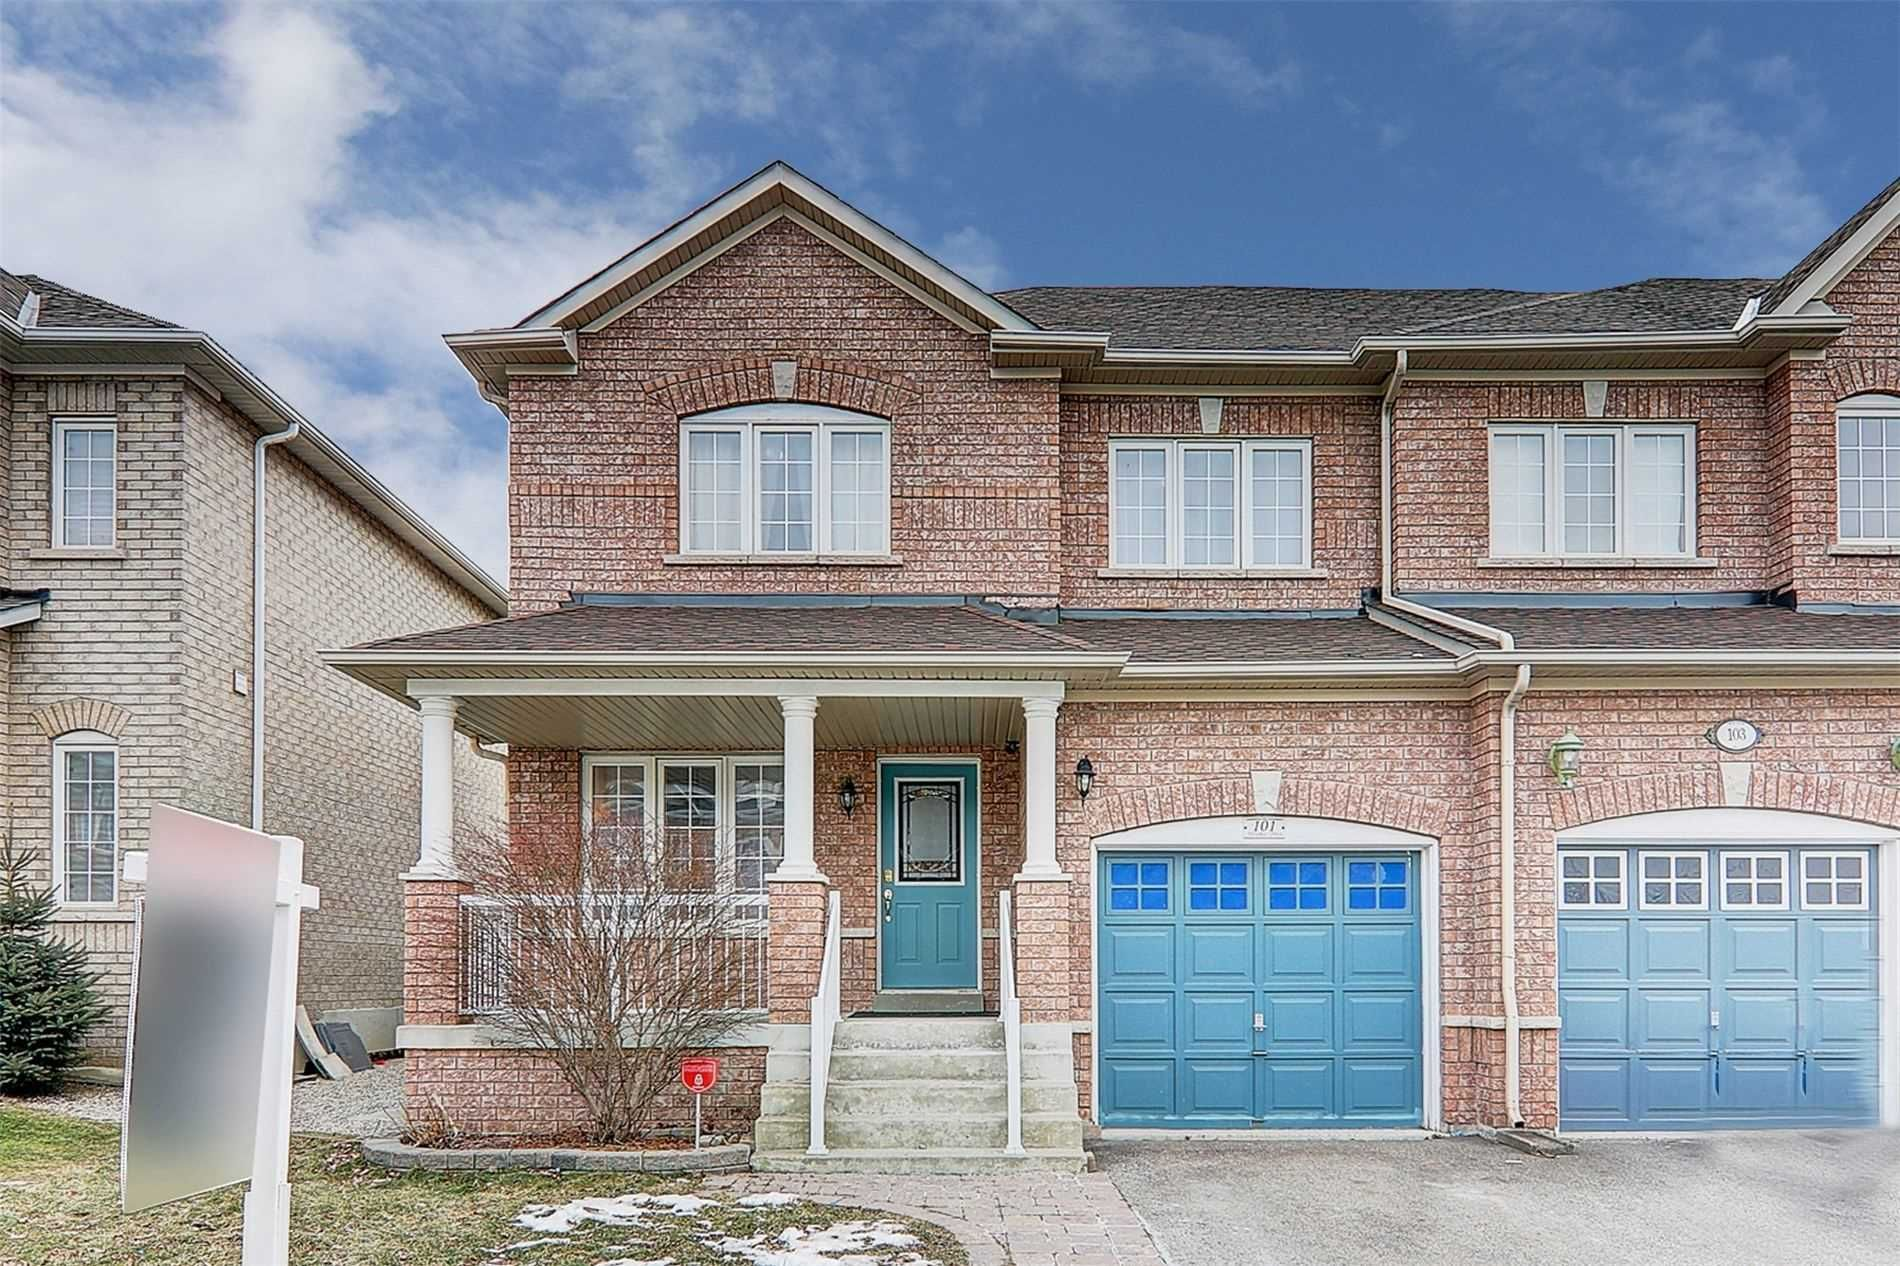 Main Photo: 101 Miramar Drive in Markham: Greensborough House (2-Storey) for sale : MLS®# N5093752